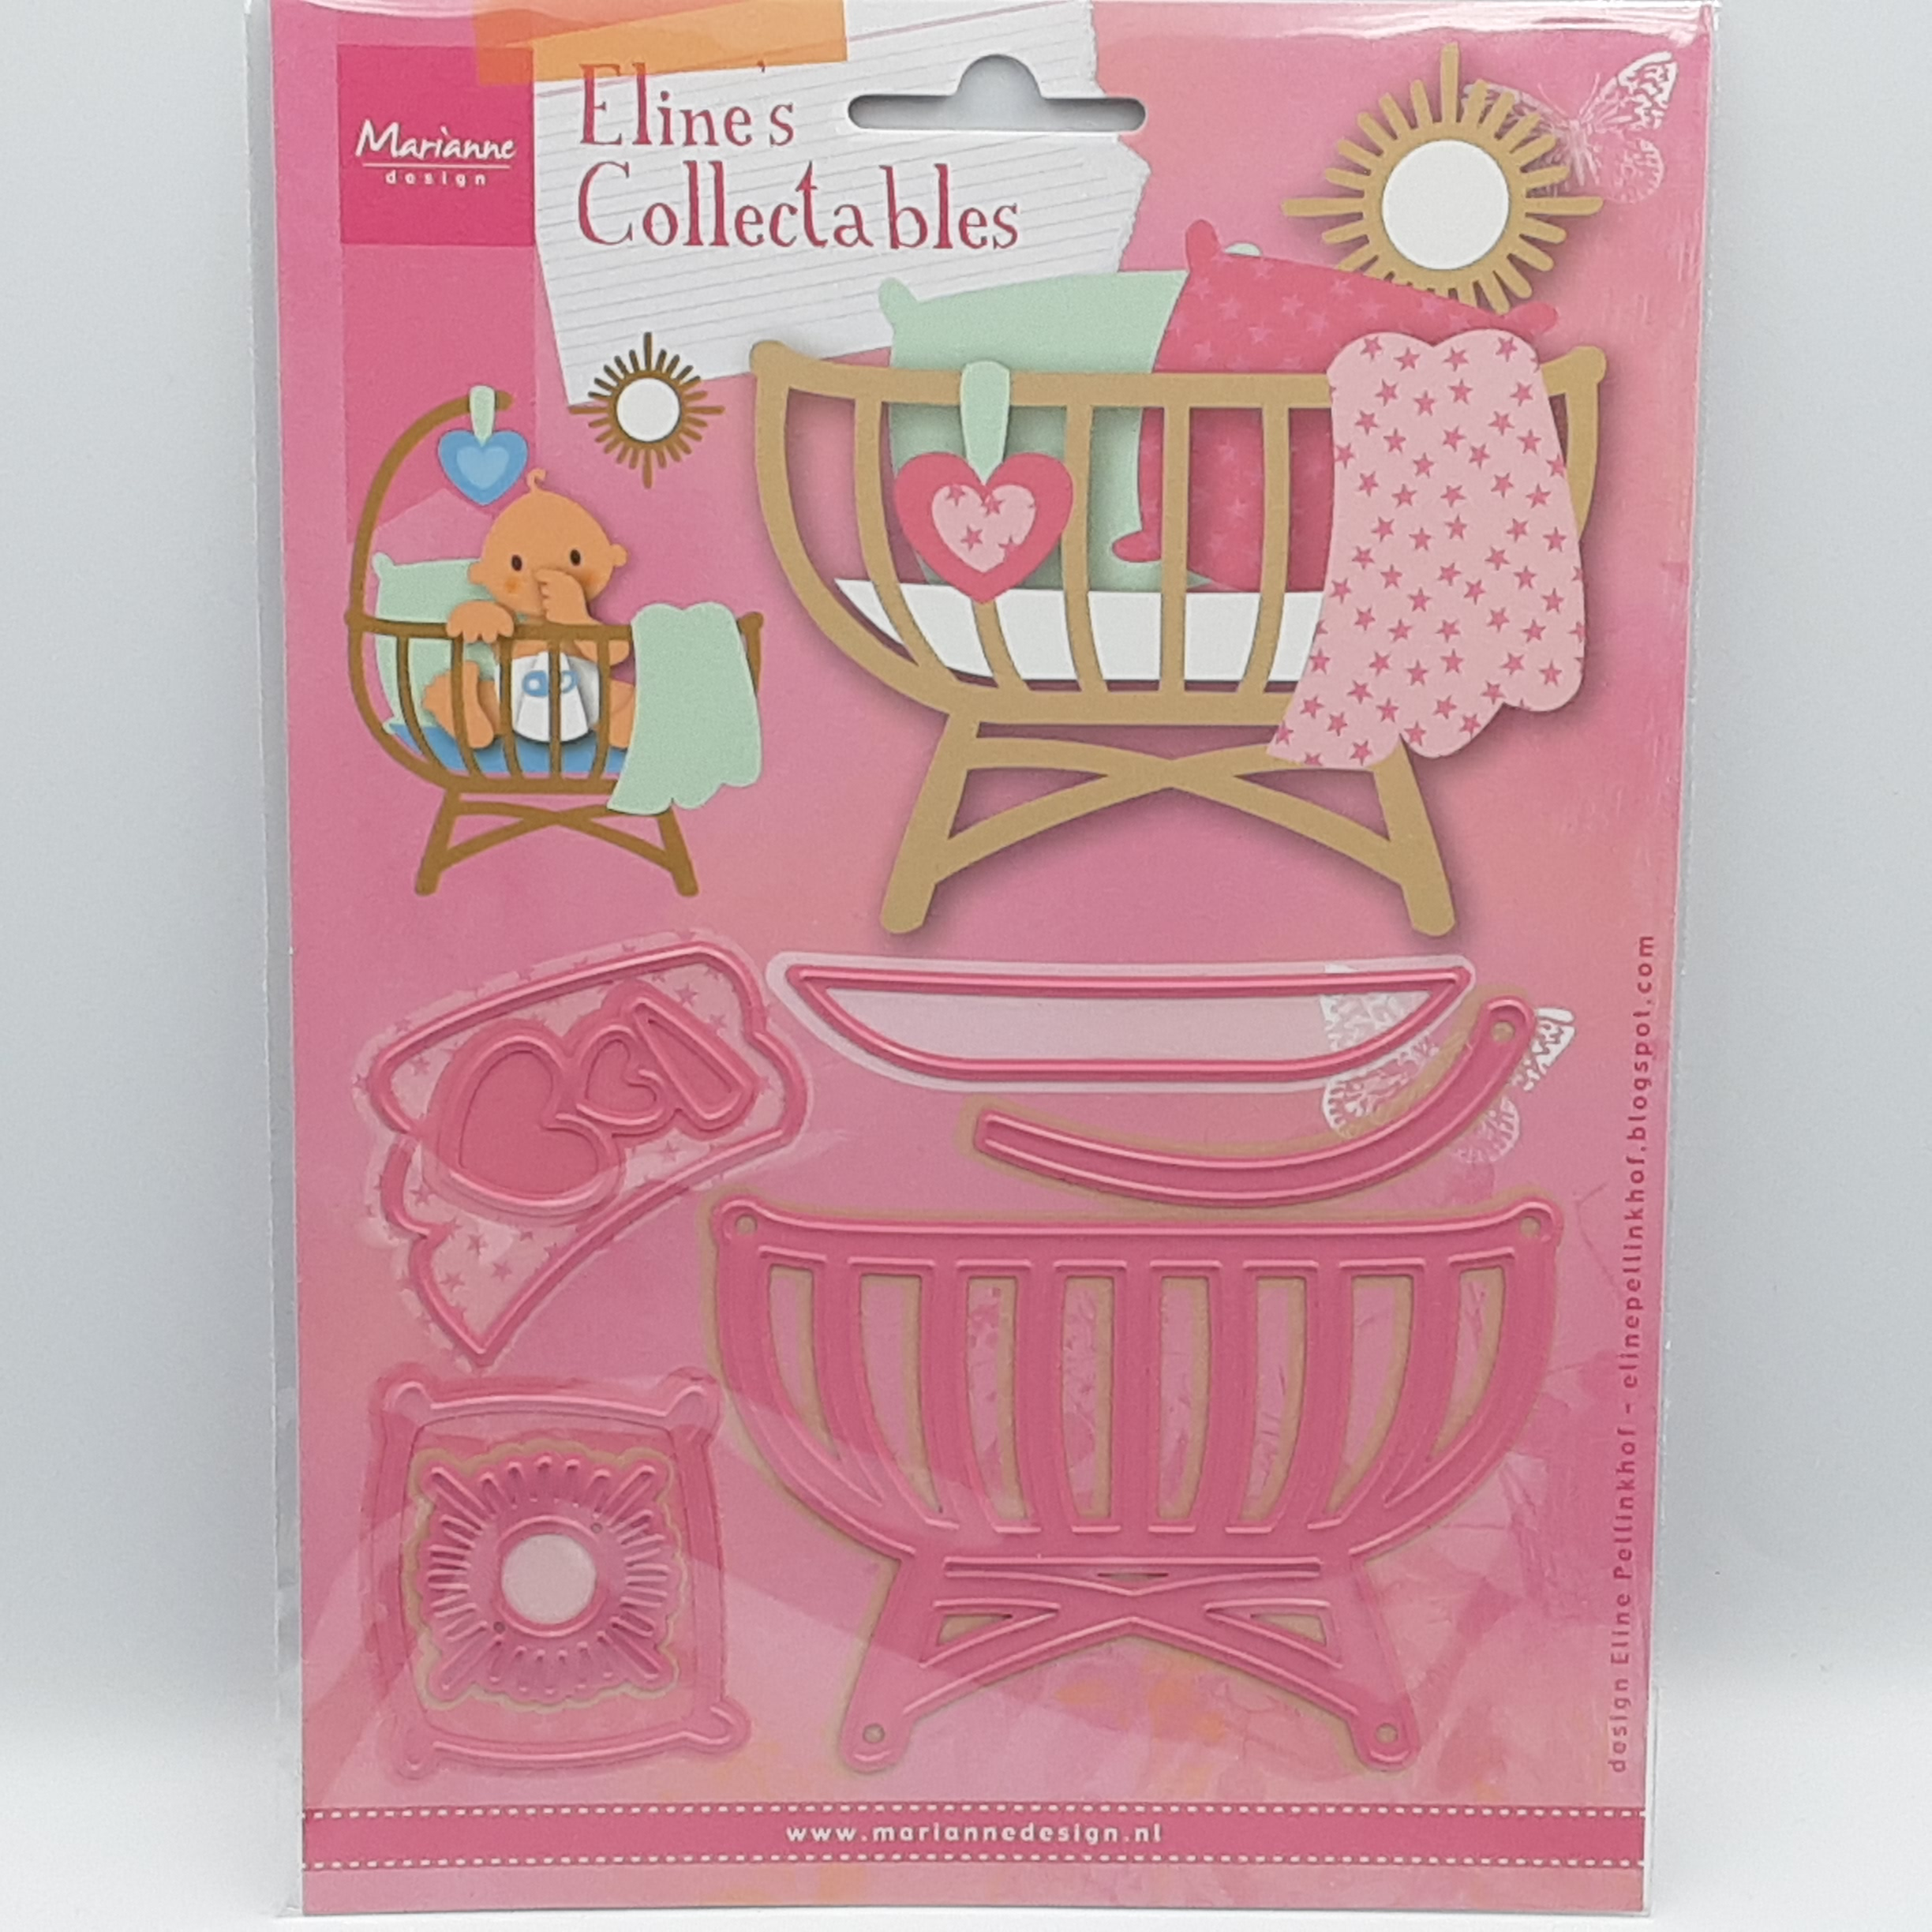 Eline's baby cot collectables